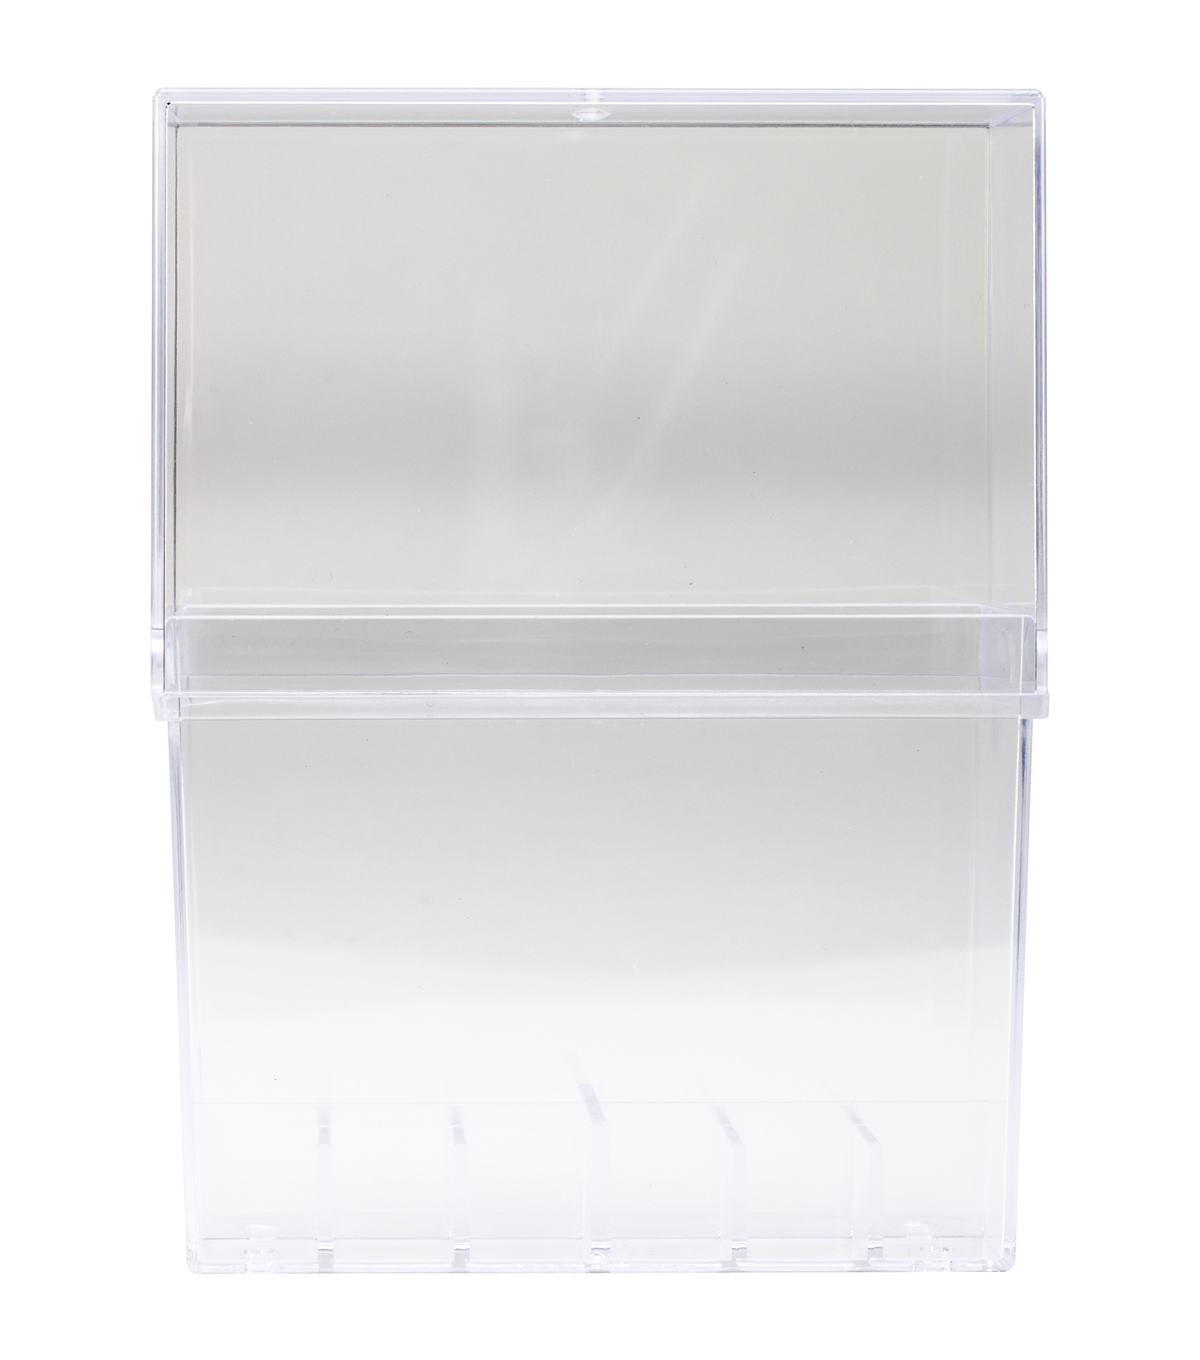 Copic Original Marker Case Holds 12 Markers